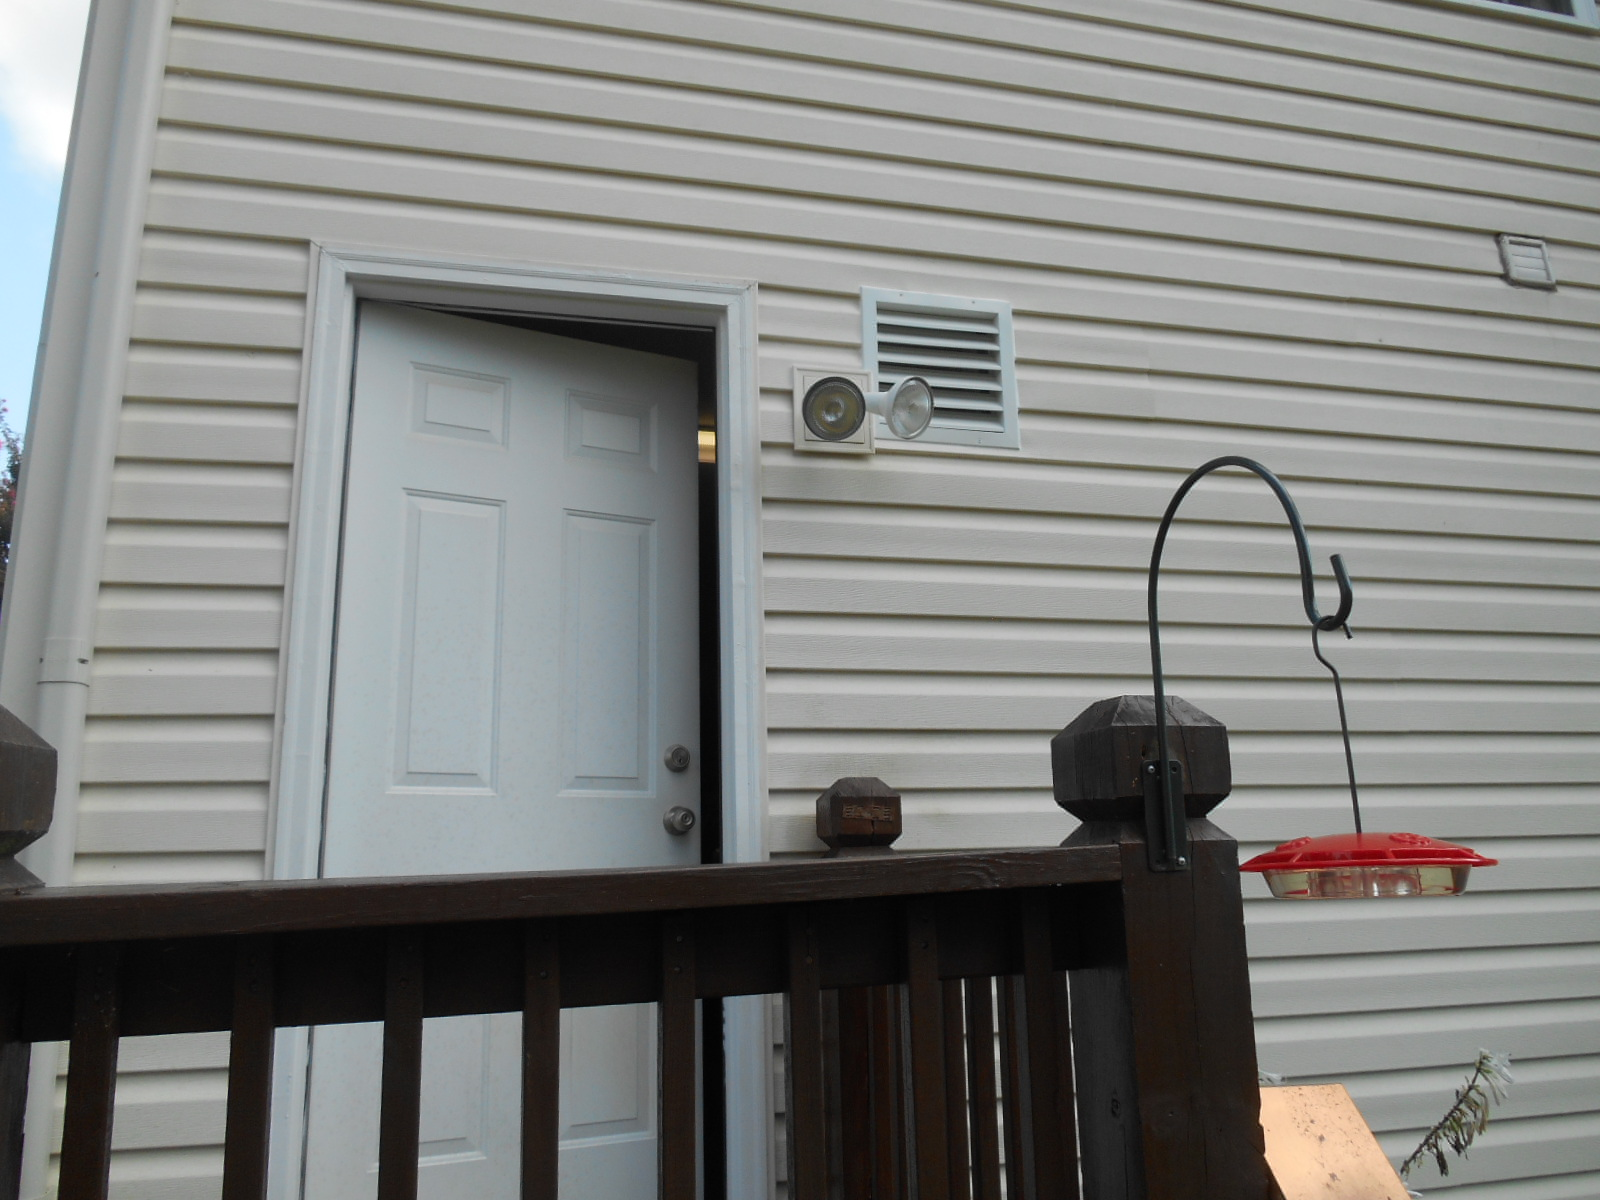 Bathroom Exhaust Fan Into Garage Gft 16 Through Wall Garage Fan Cool My Garage